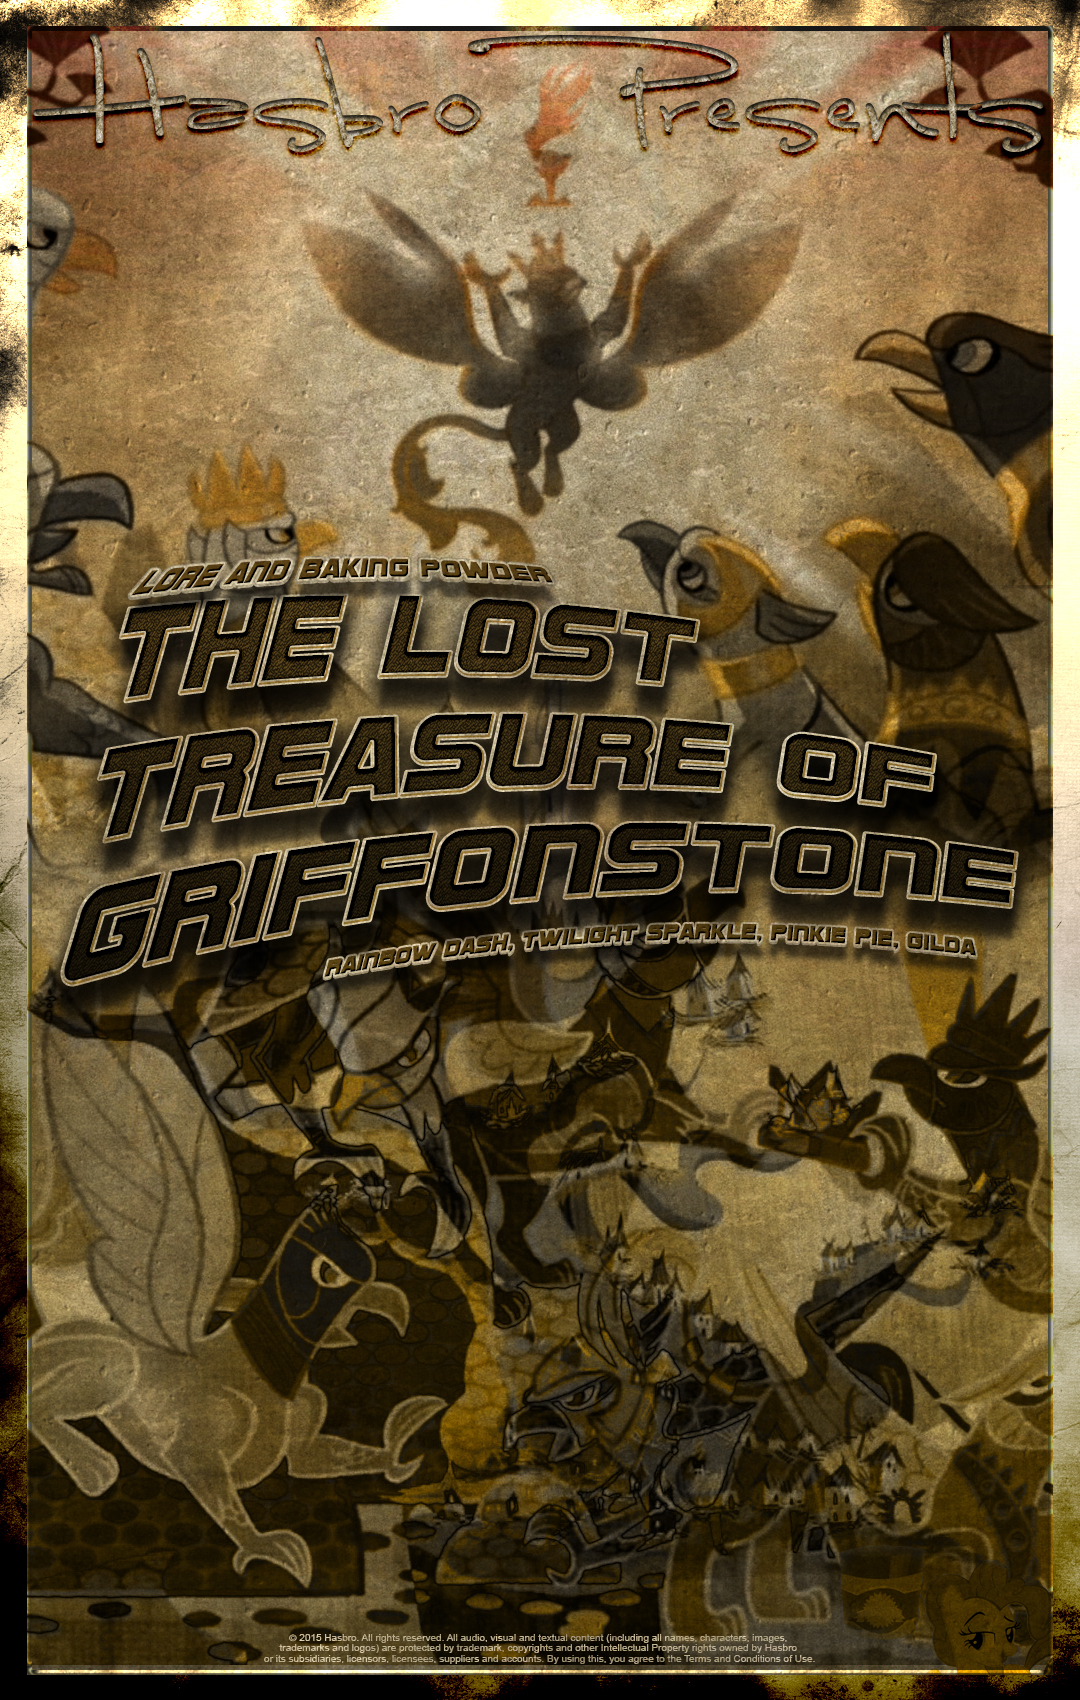 mlp_the_lost_treasure_of_griffonstone_movie_poster_by_pims1978-d8uhwp0.jpg